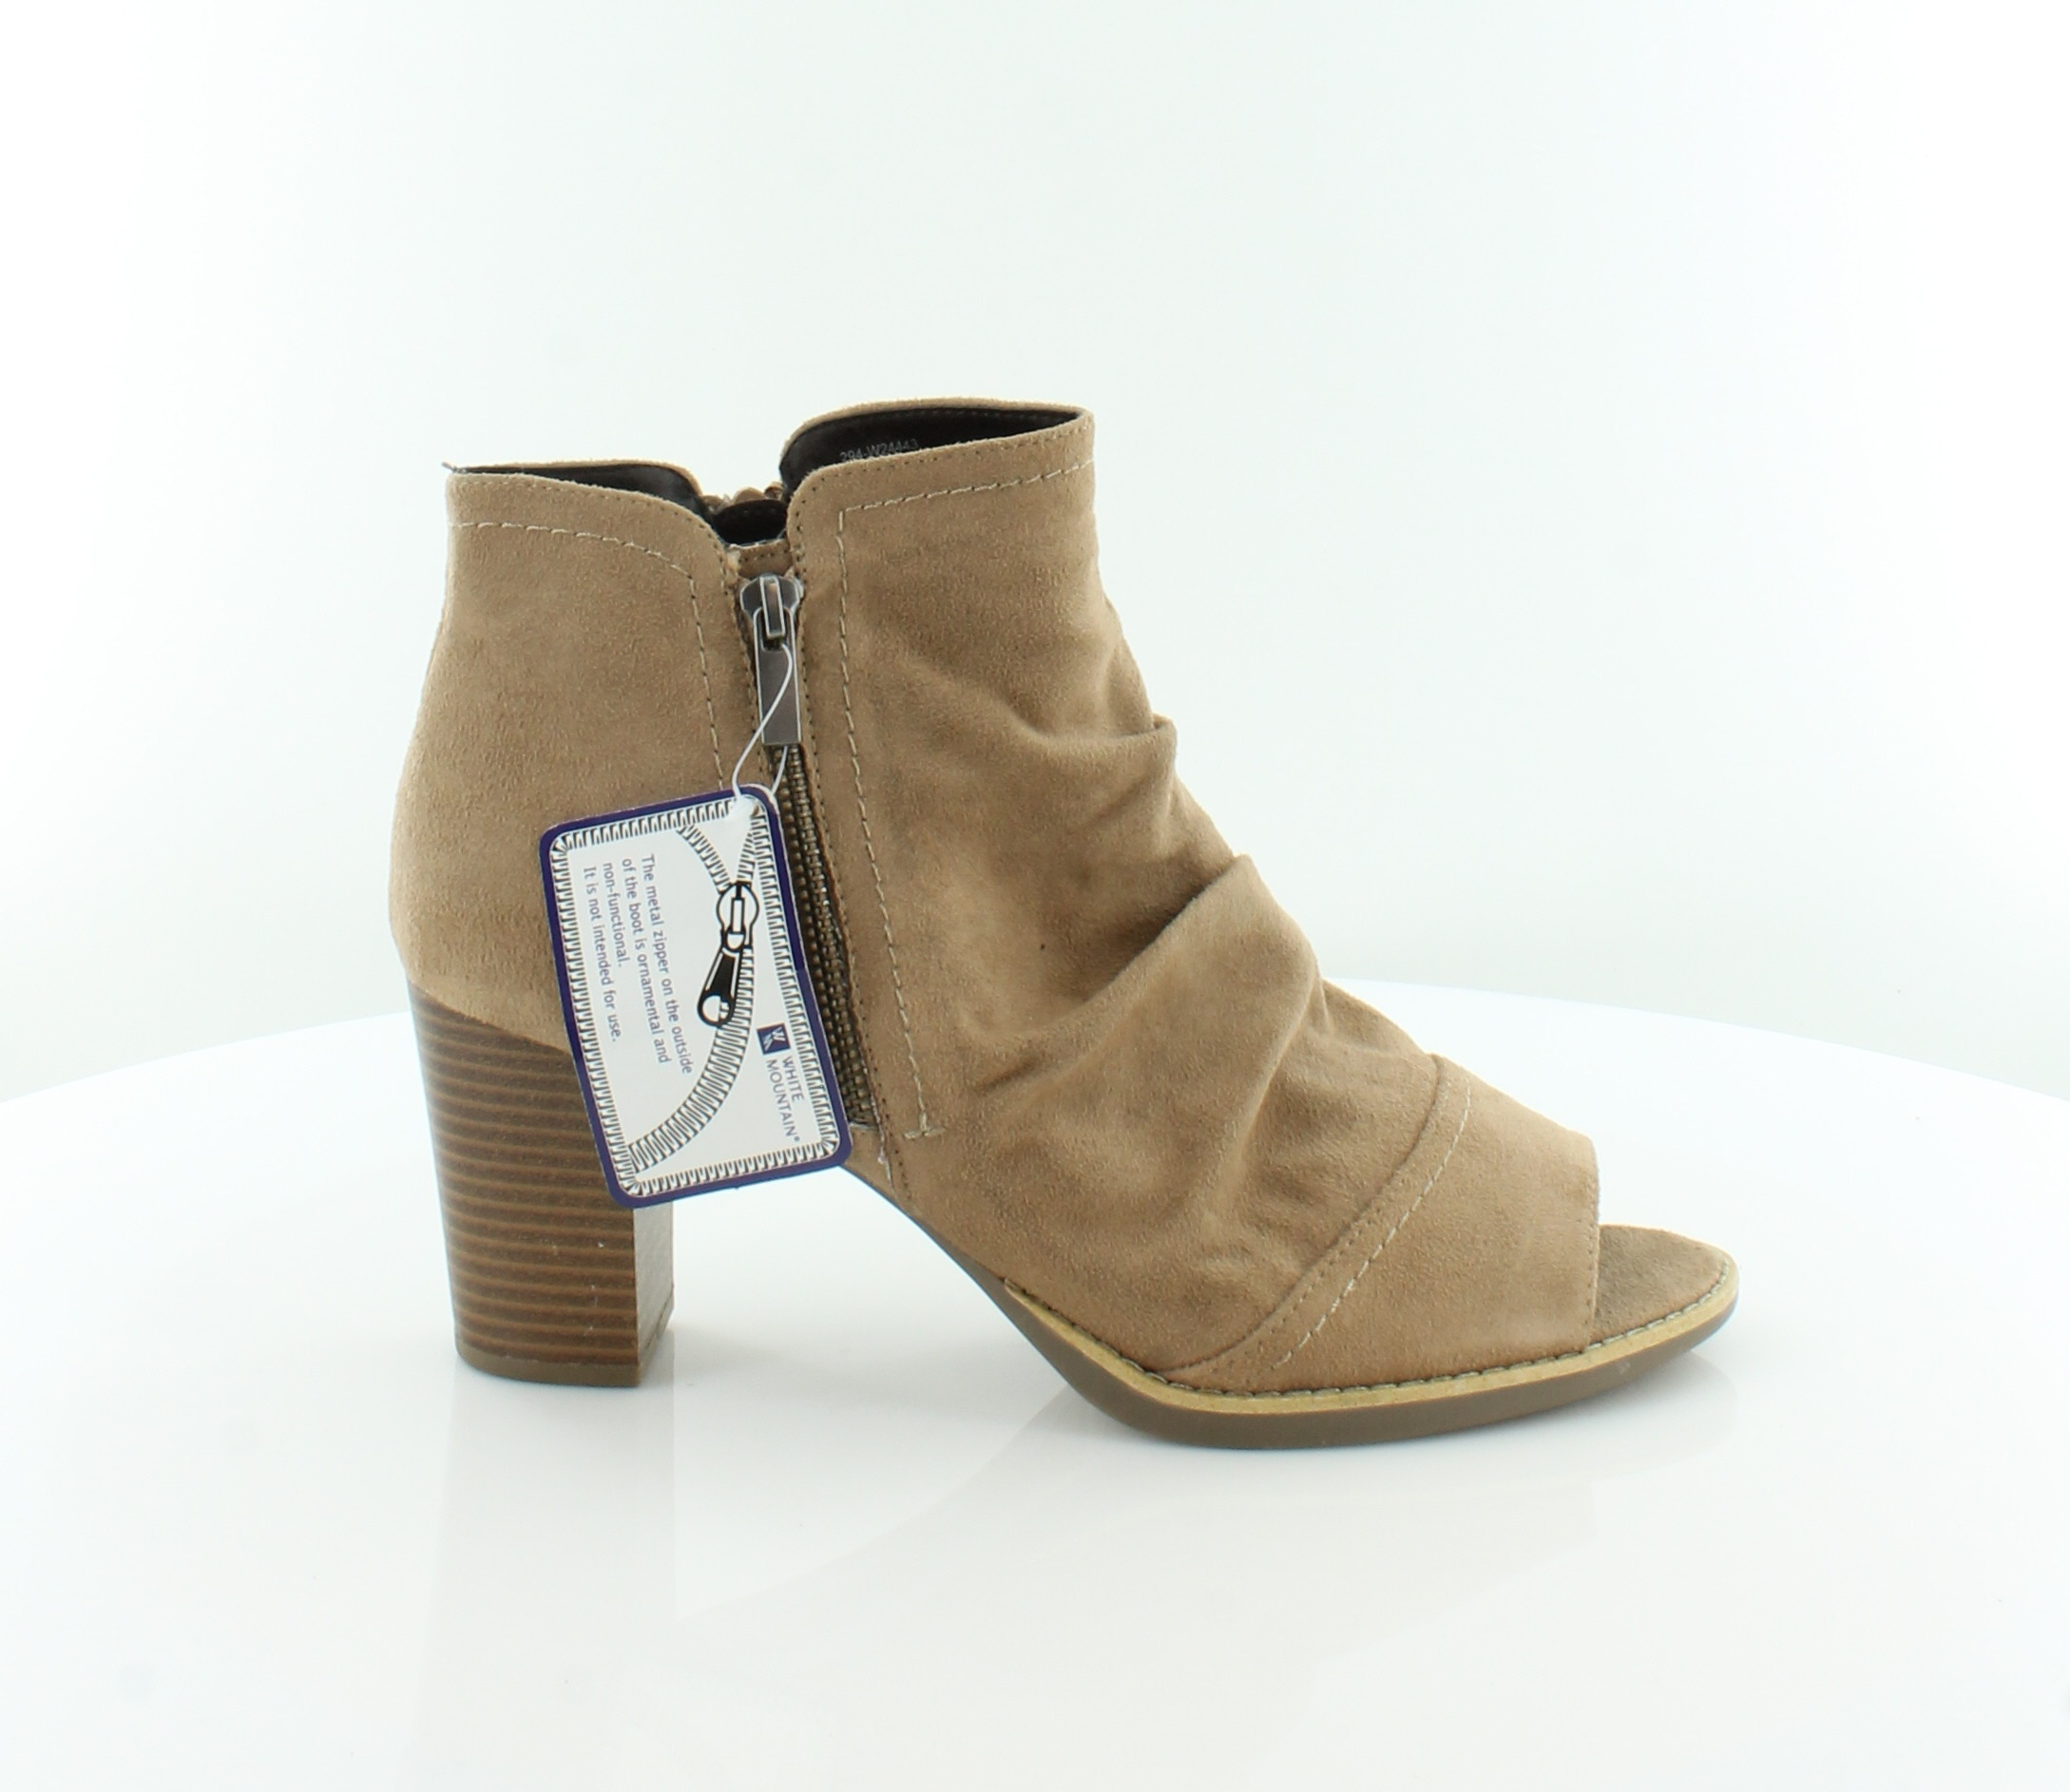 White Mountain Gemini Brown M Womens Shoes Size 11 M Brown Heels MSRP $79 251cfe